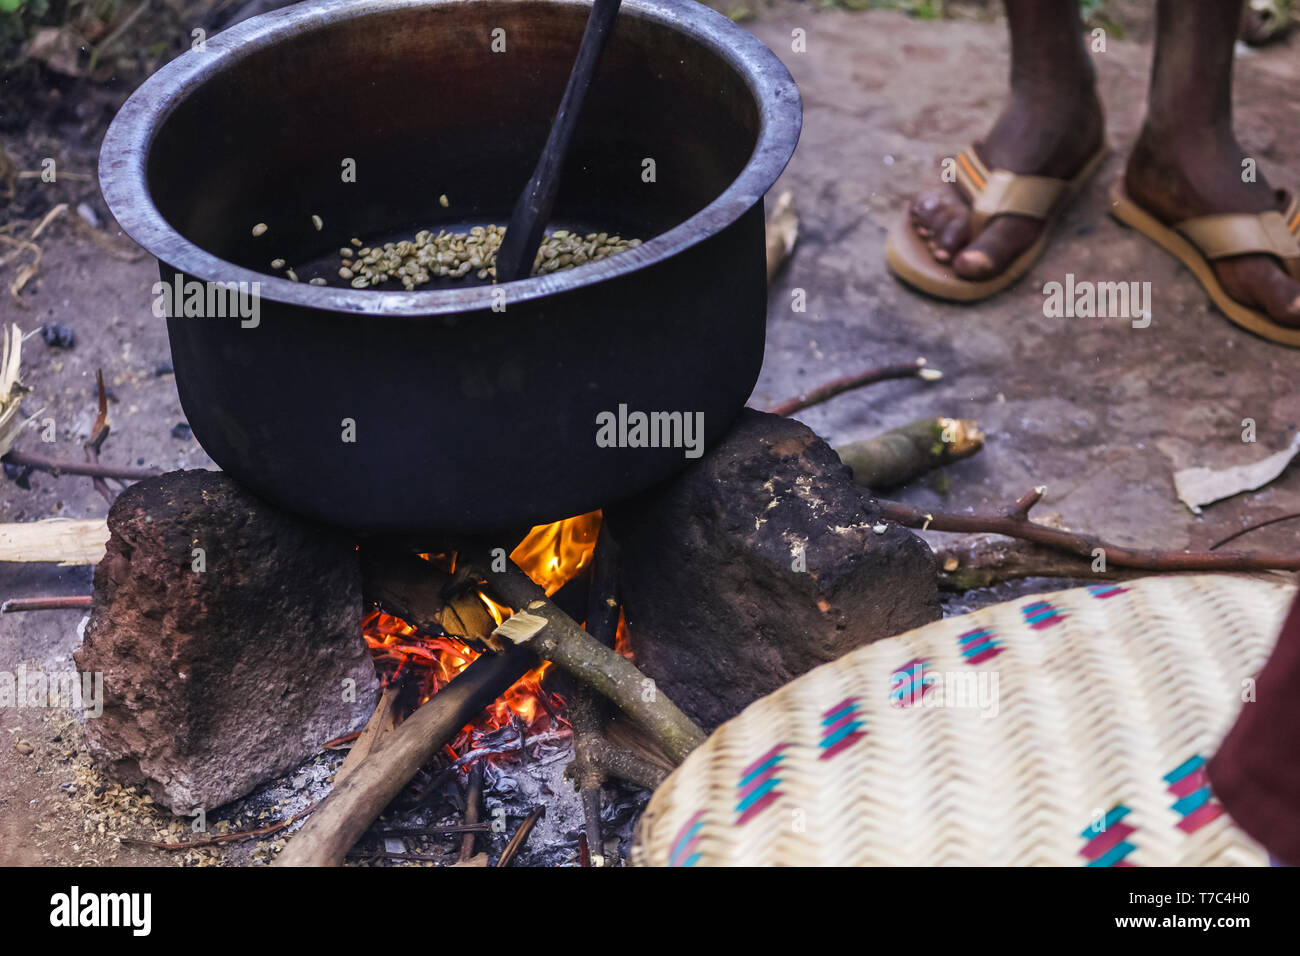 Traditional african morning near the bonfire with fresh roasted aromatic cup of coffee. Big deep pot with green coffee beans on the open fire. Stock Photo